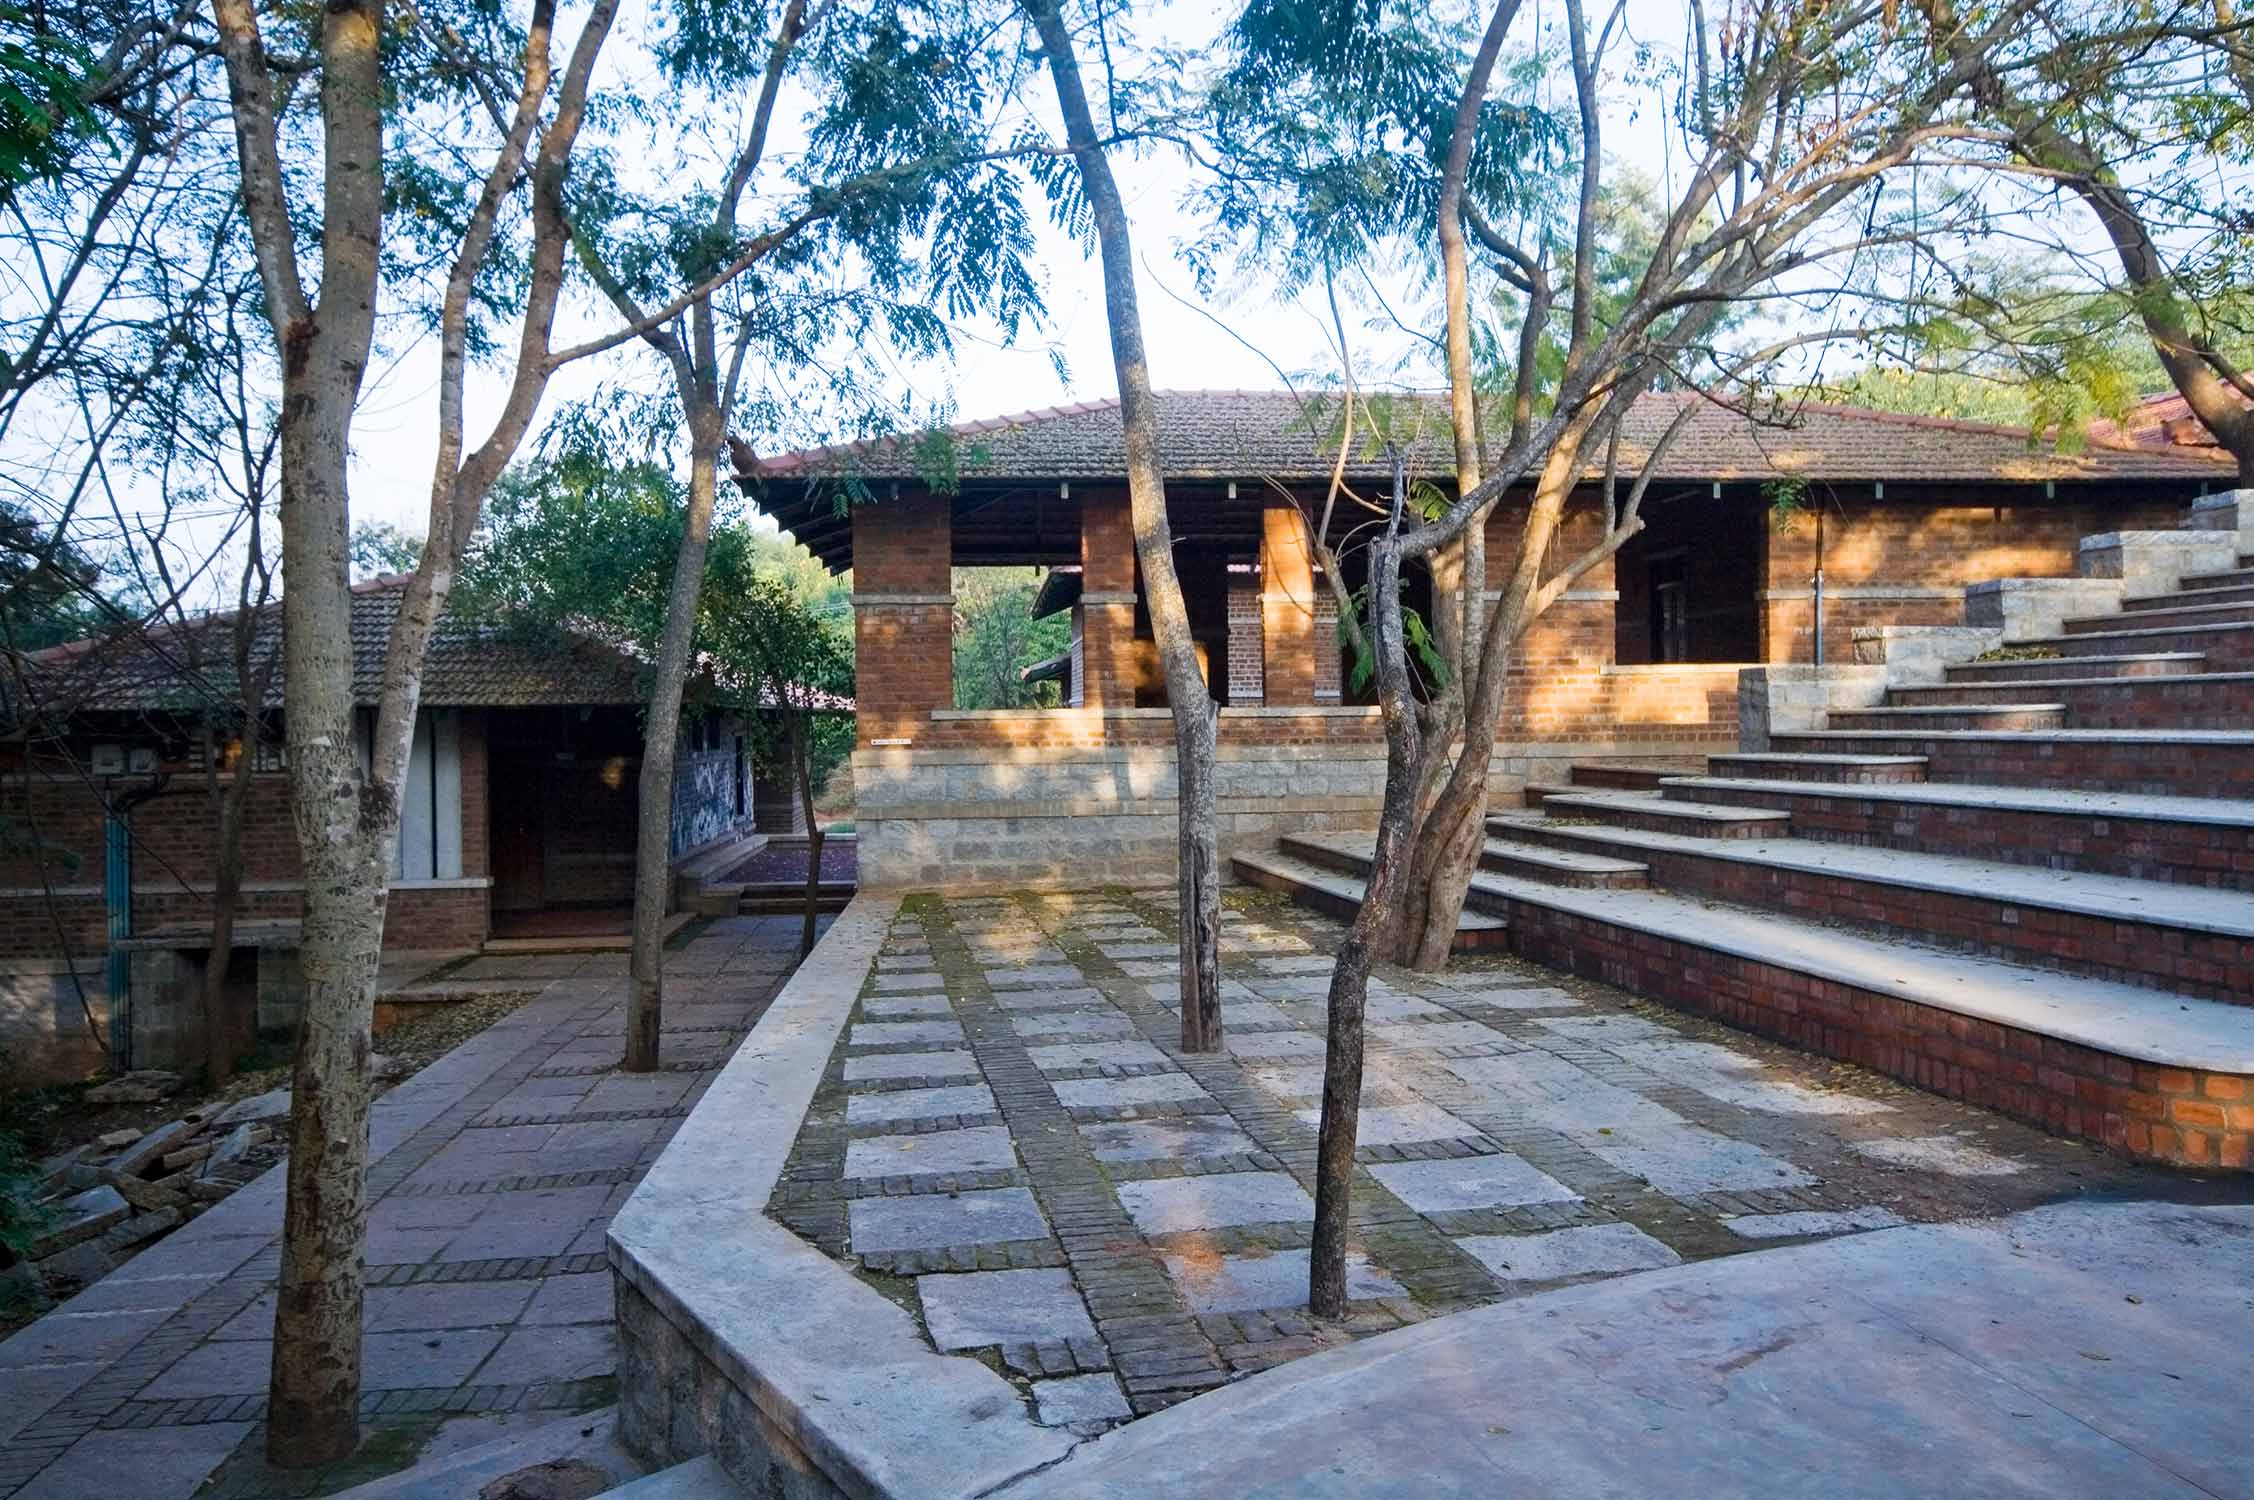 The Valley School- One Among the Top Bangalore Schools